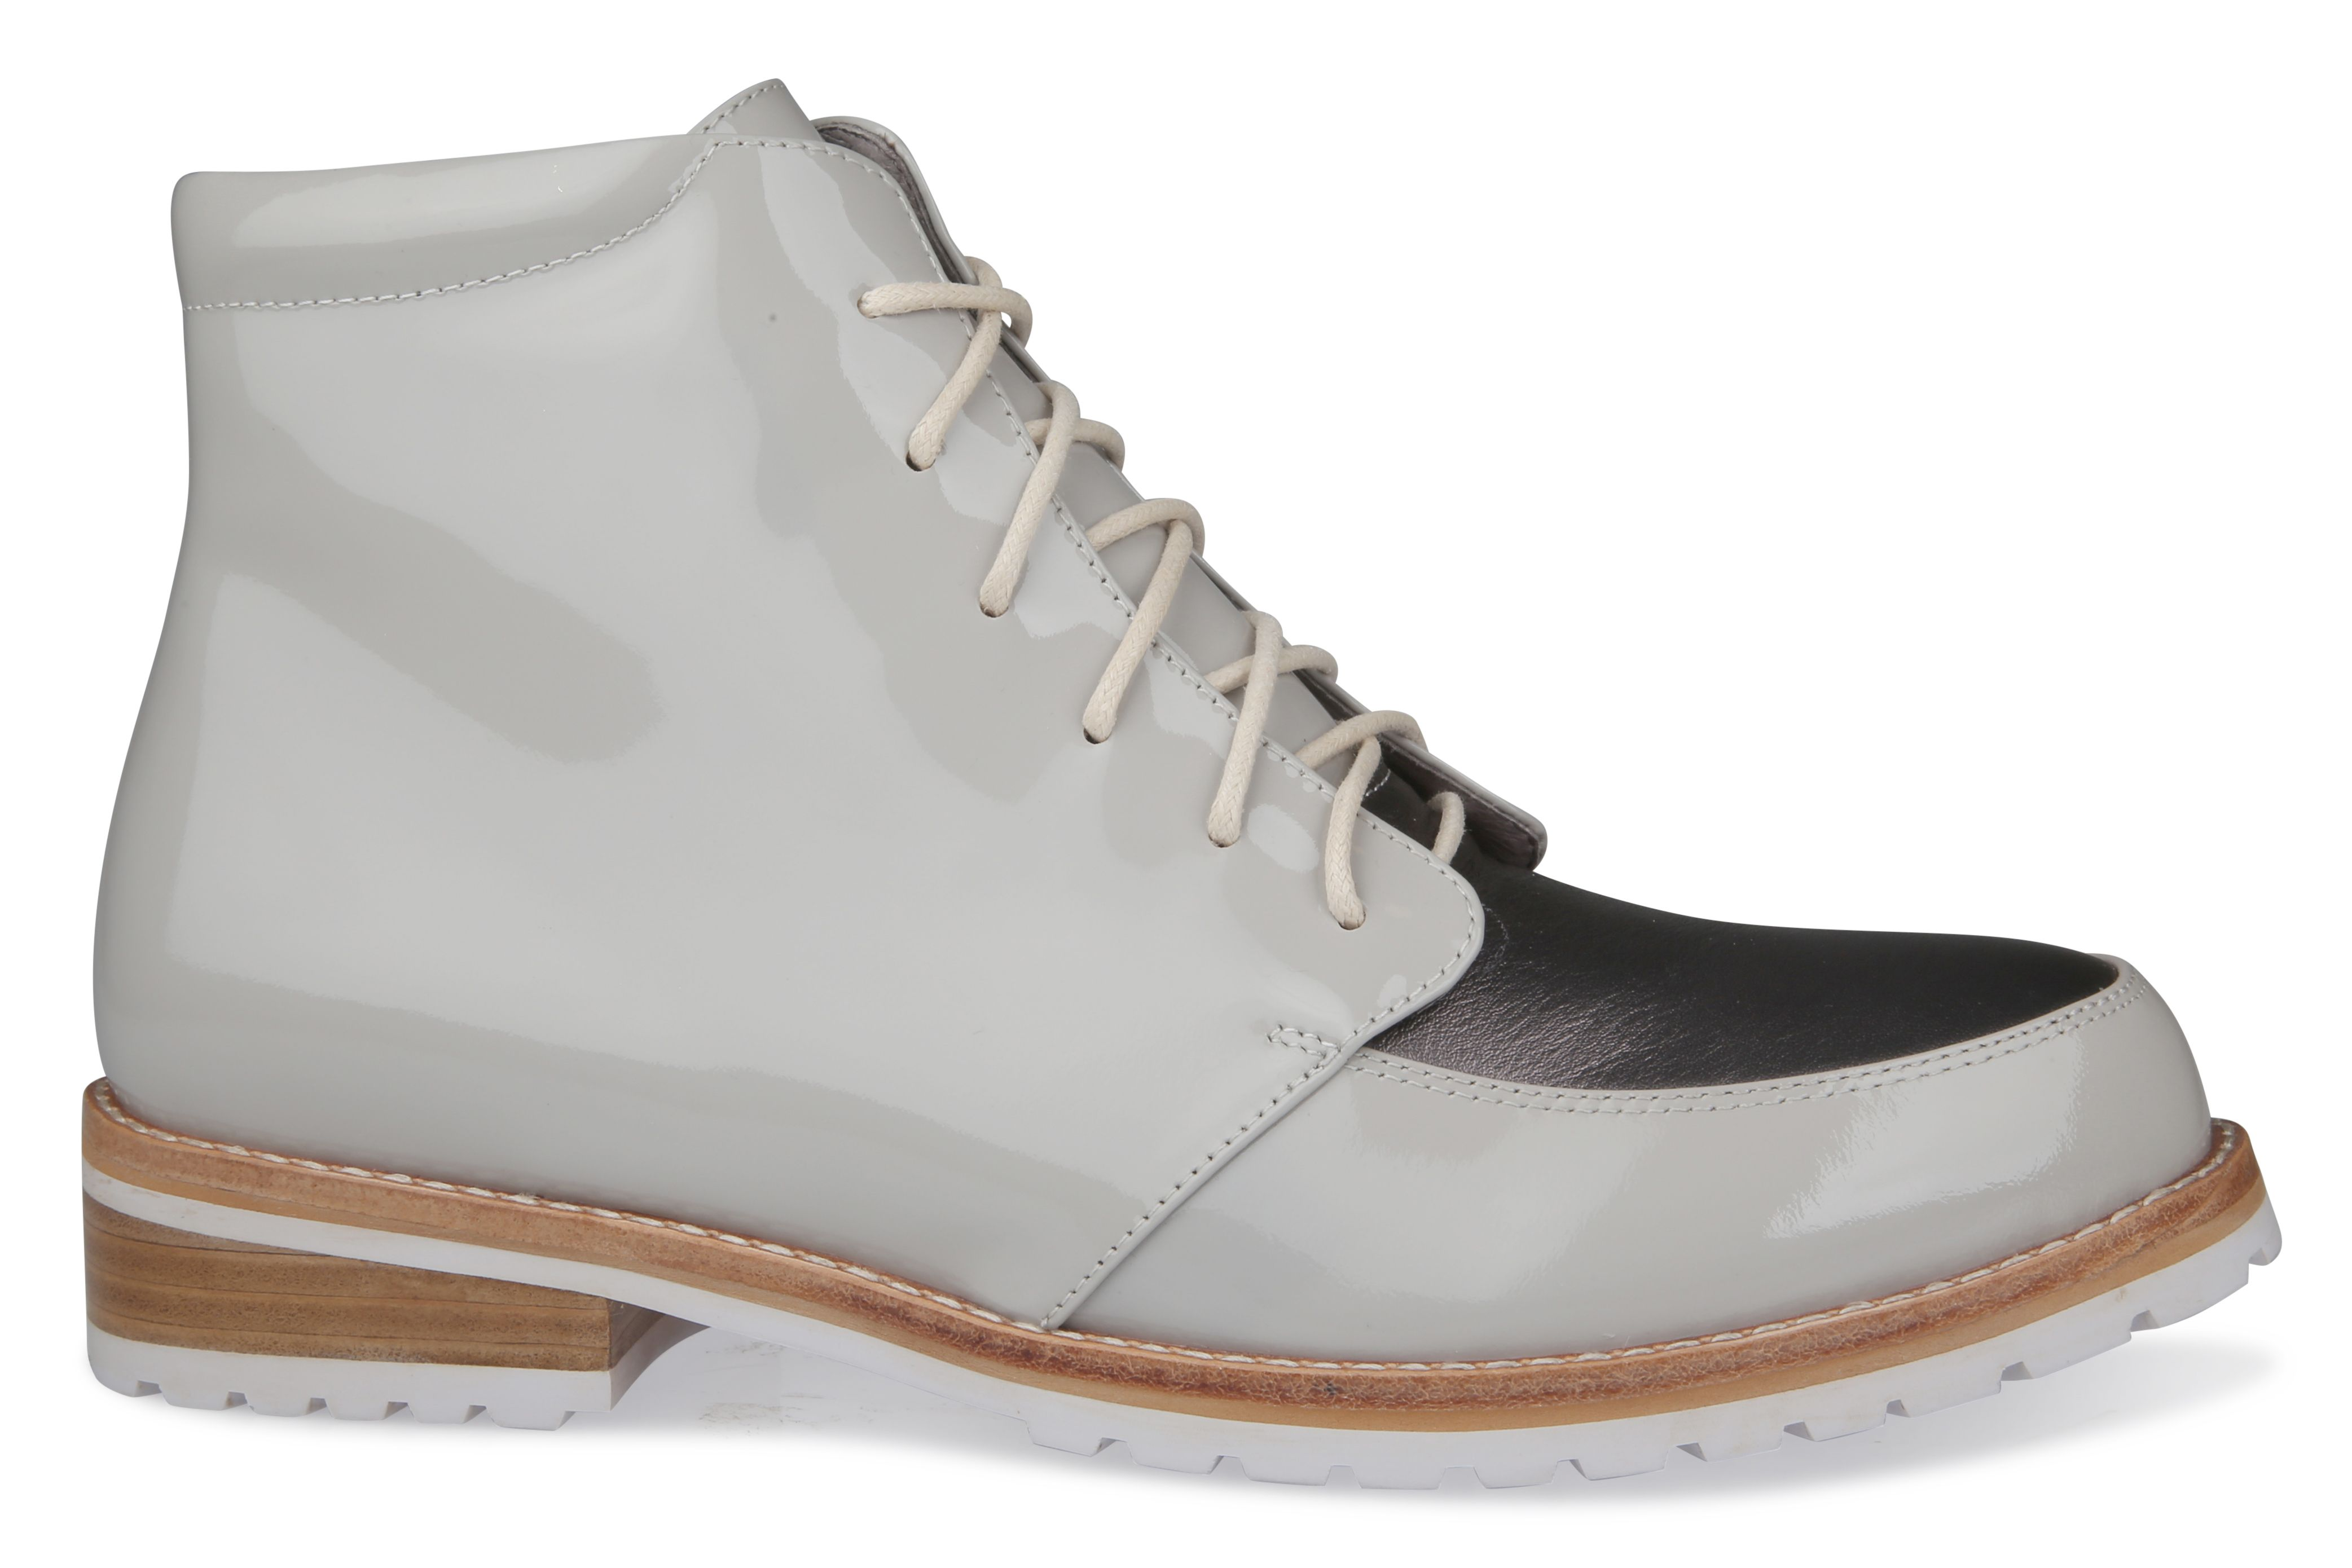 Shoe Connection Oli Odessa Grey Pewter Leather Ankle Boot 289 99 Https Www Shoeconnection Co Nz Womens Boo Womens Ankle Boots Leather Ankle Boots Boots